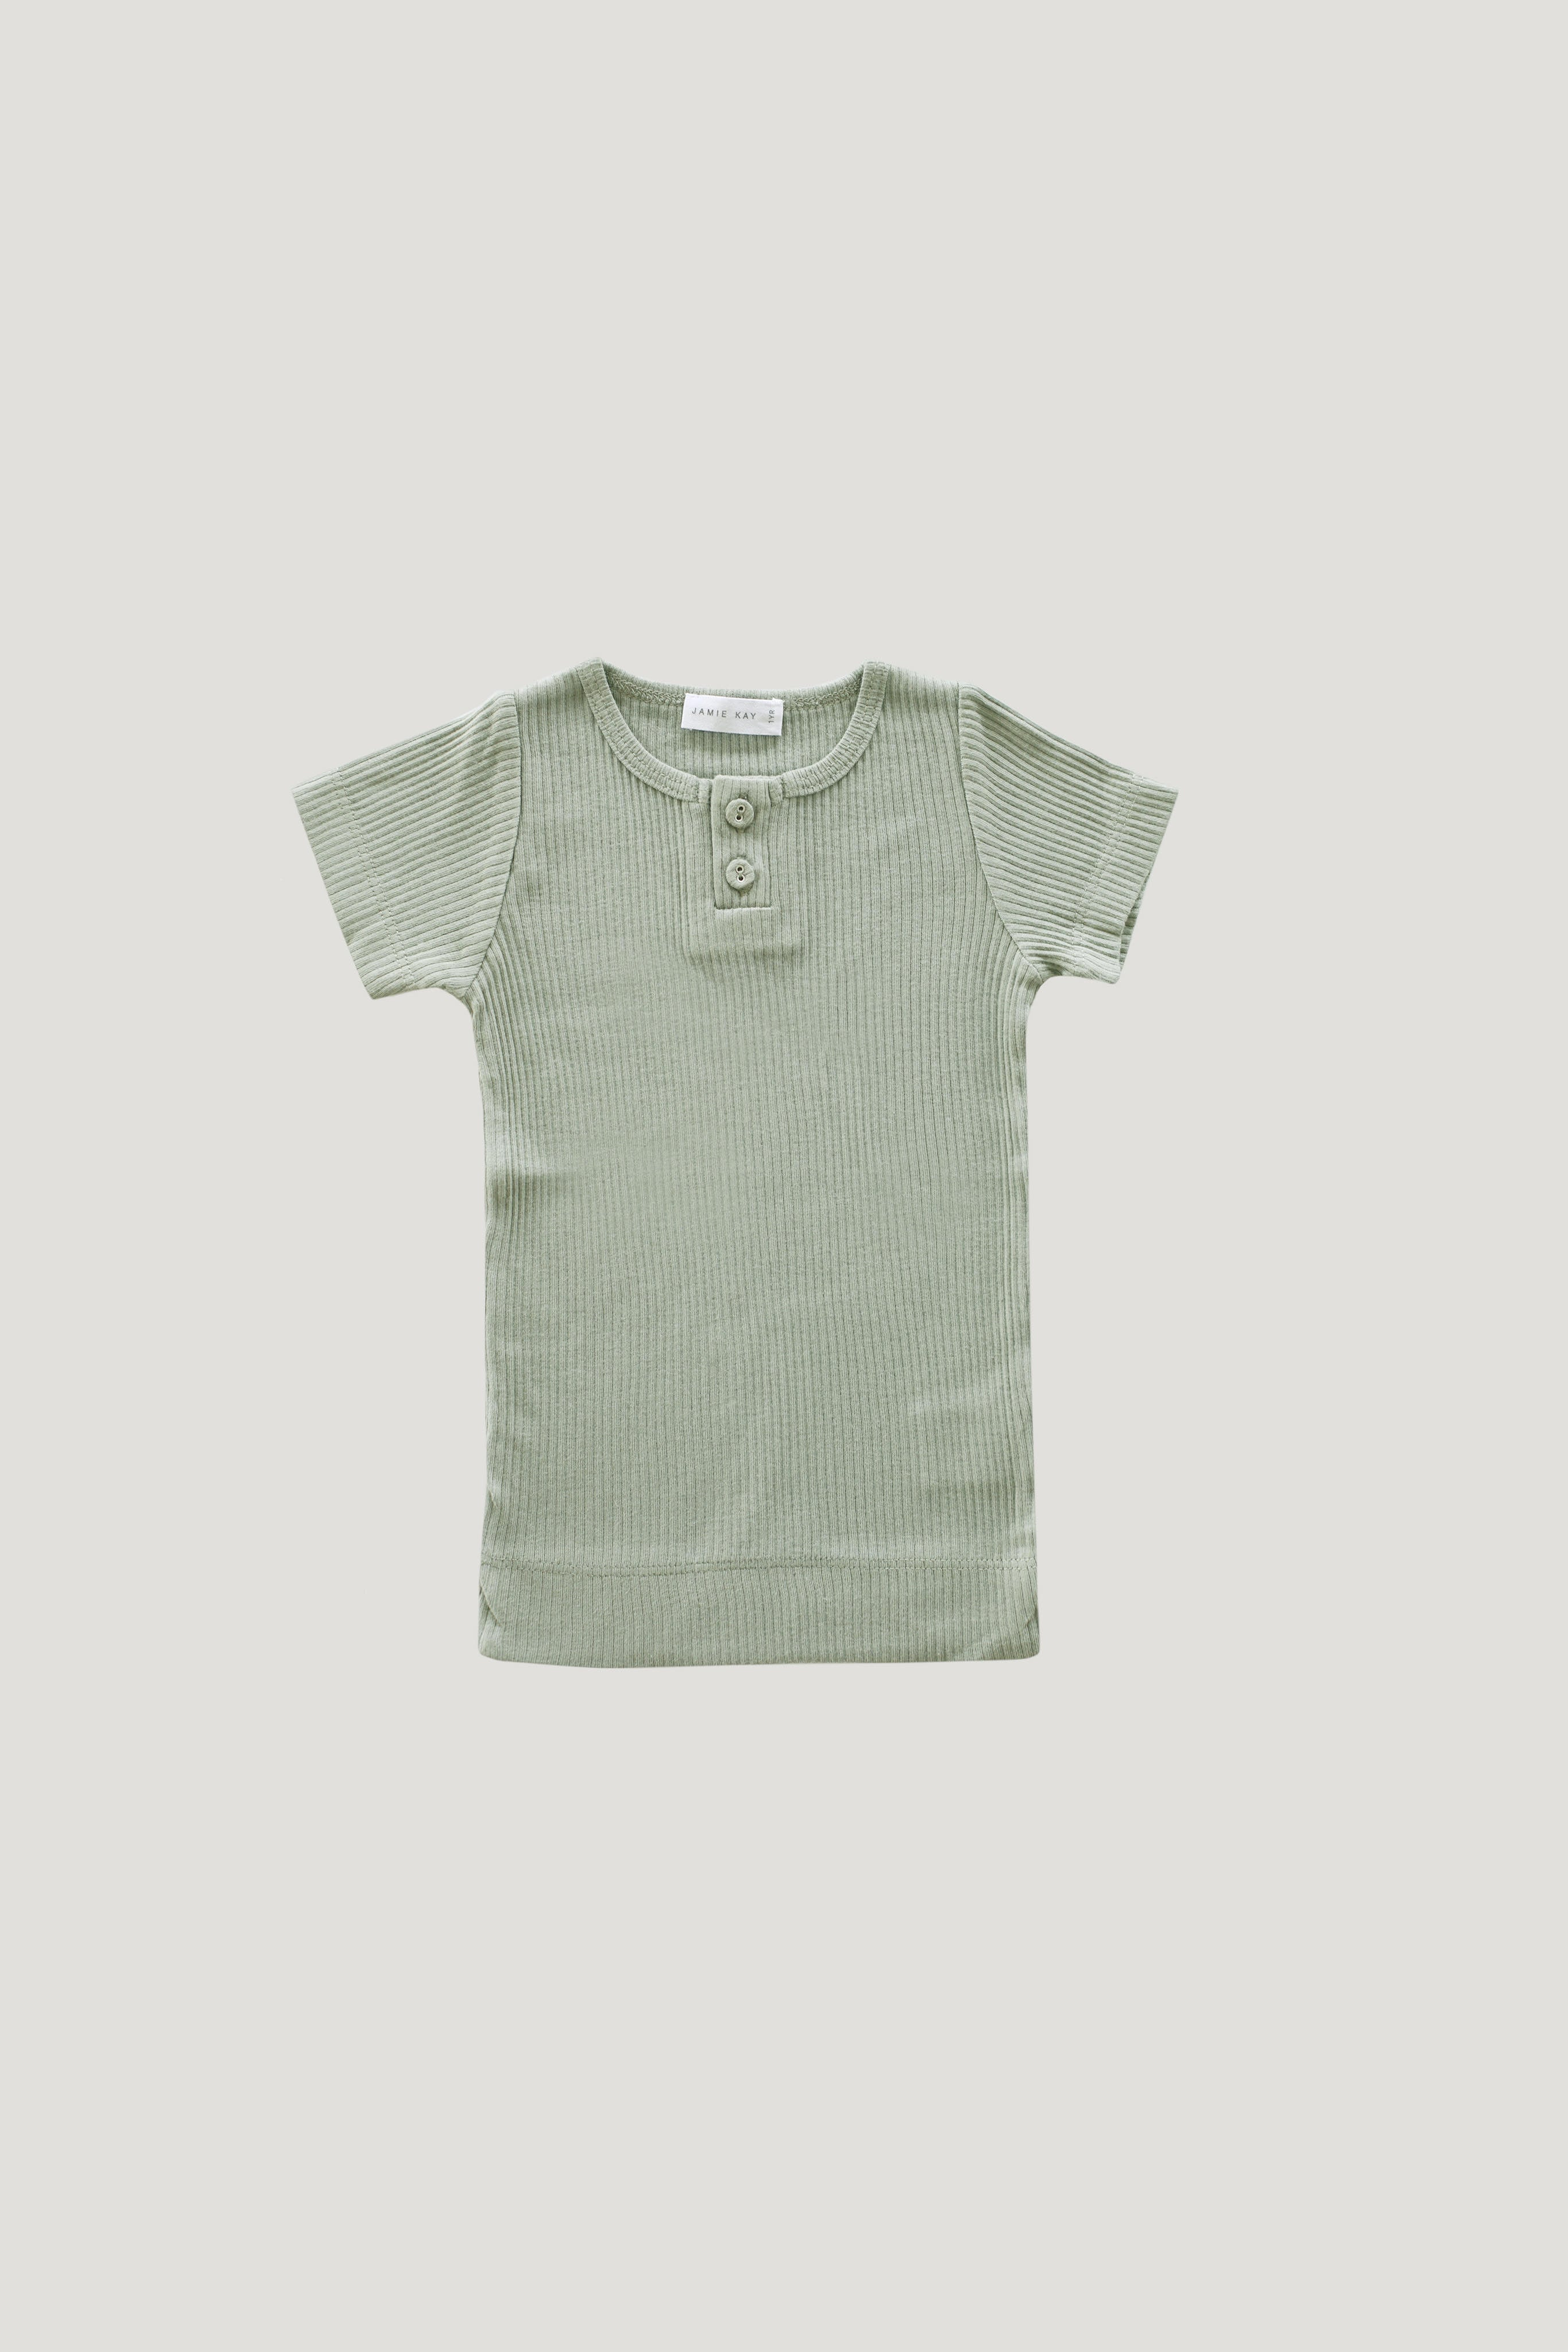 Original Cotton Modal Tee - Sage